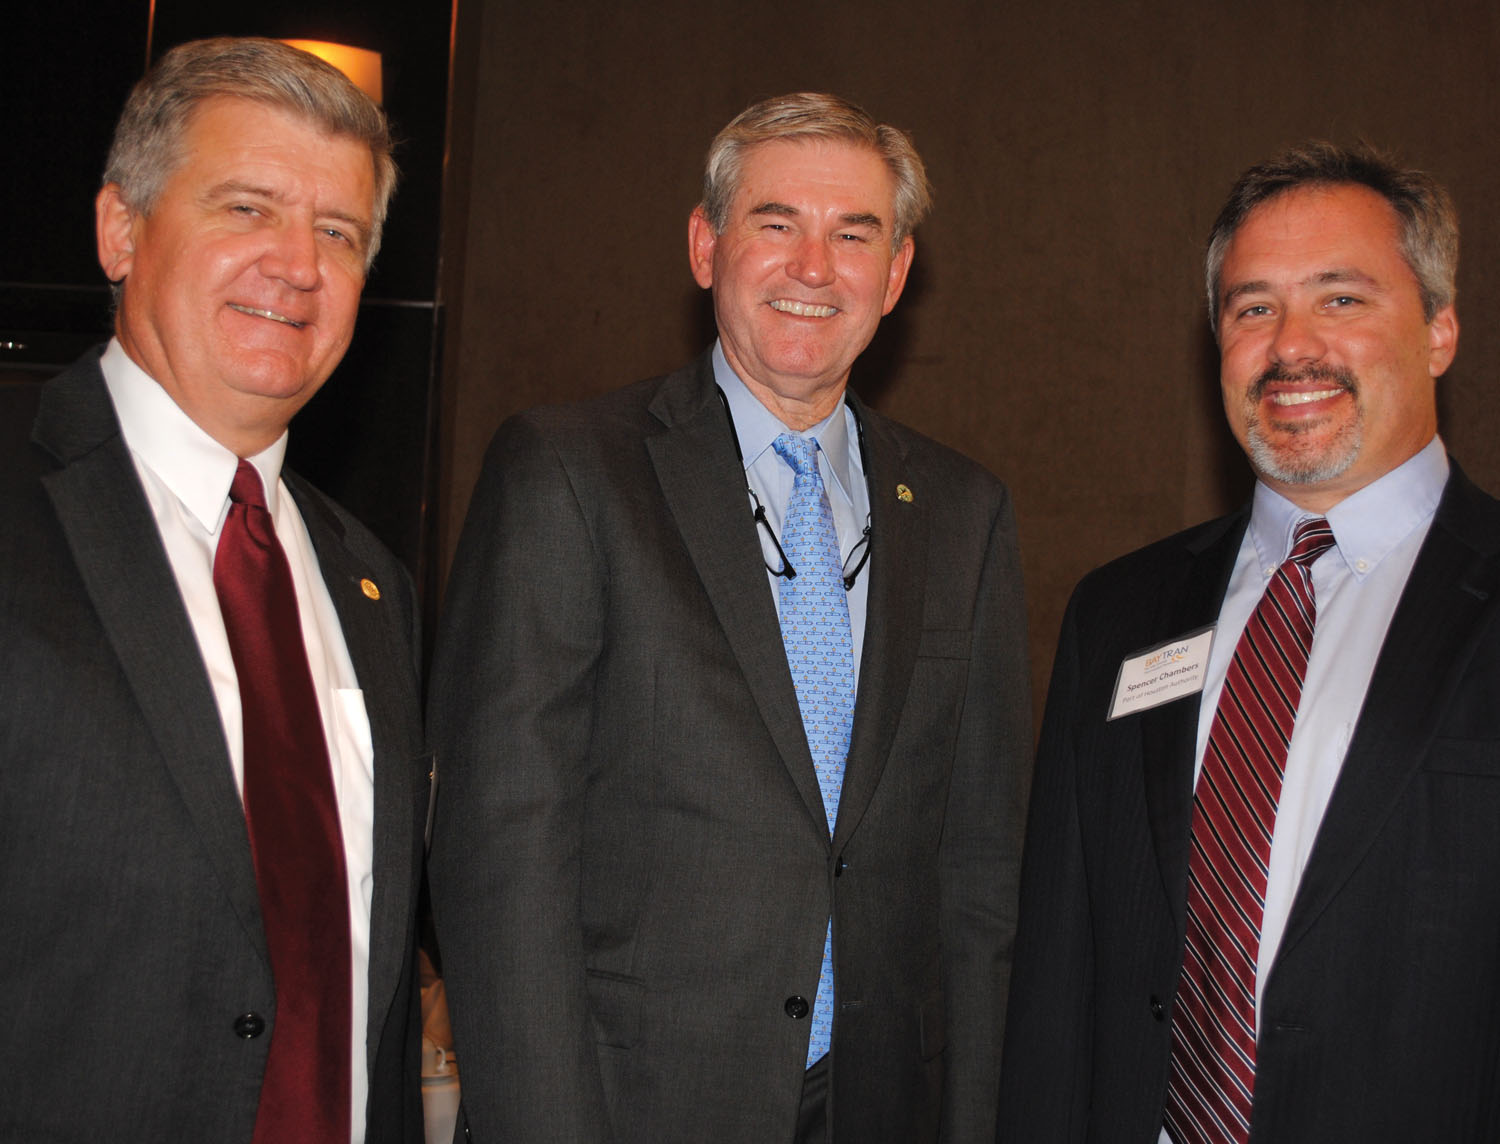 State Rep. Ed Thompson, center, stops for a visit with Port of Houston Executive Director Roger Guenther, left, and the Port's Director of Governmental Relations Spencer Chambers, a BayTran Board member, at the BayTran monthly luncheon at Cullen's.